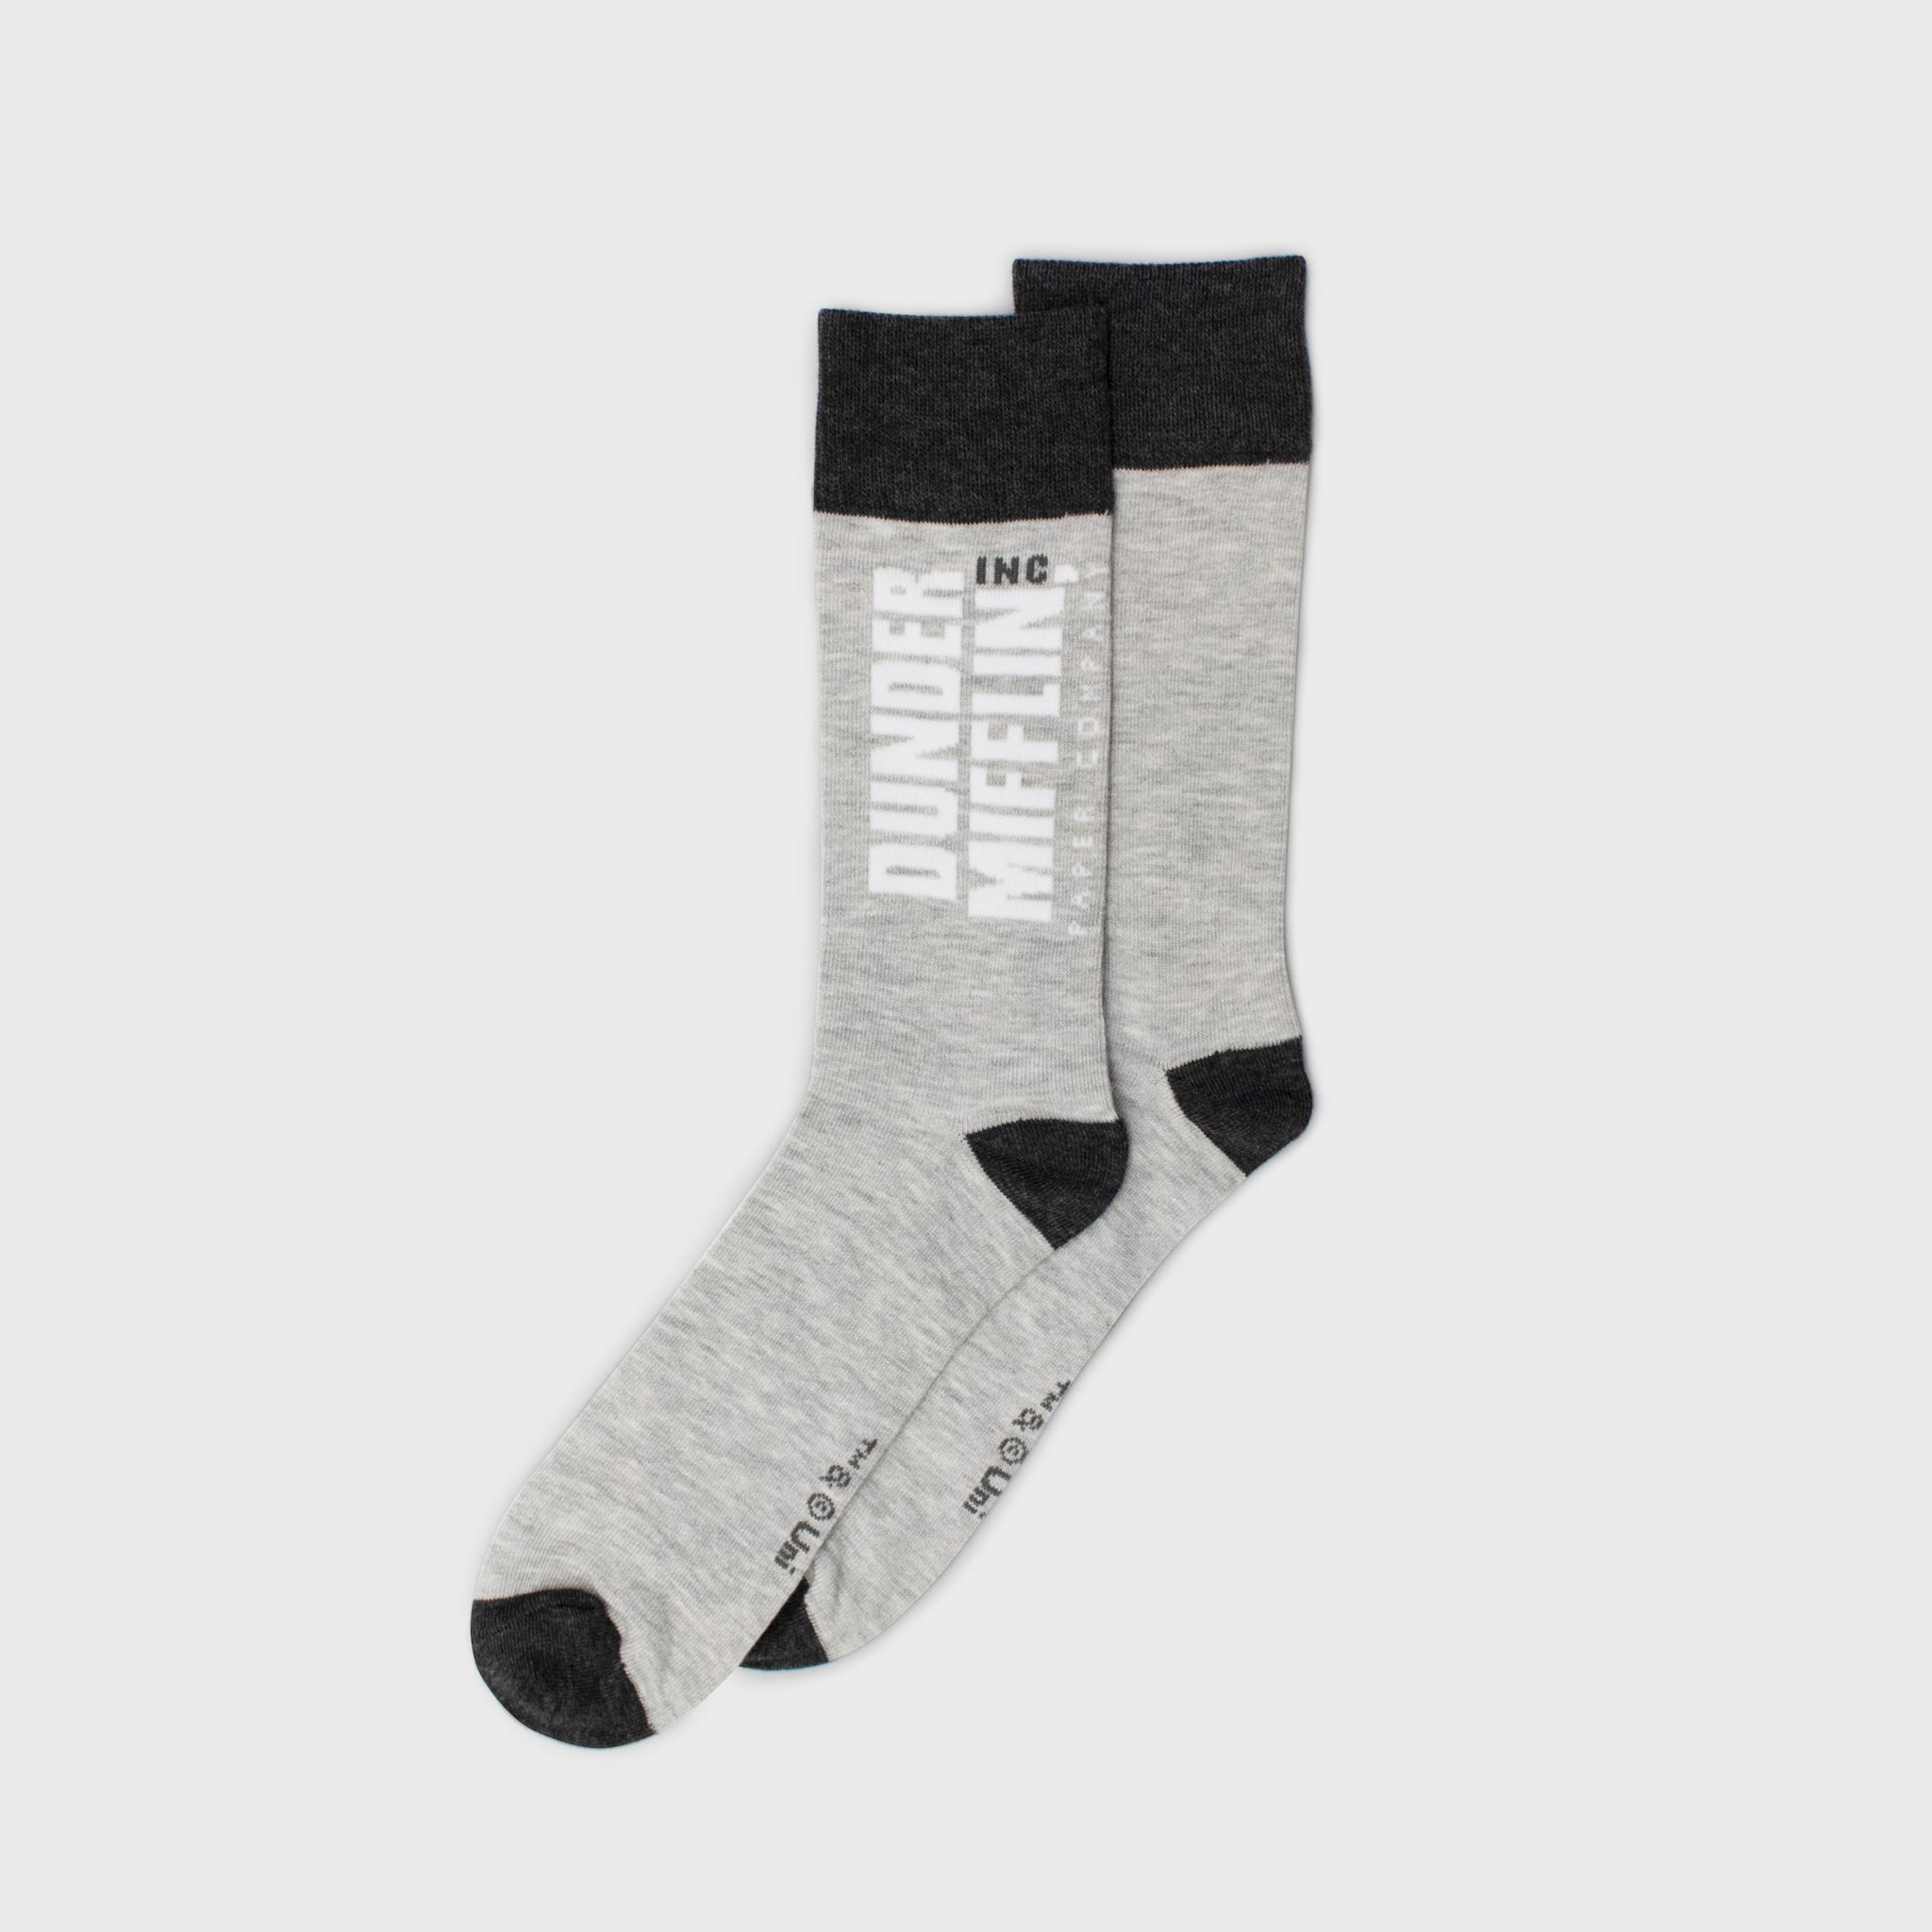 socks crew socks accessories apparel the office dunder mifflin culturefly